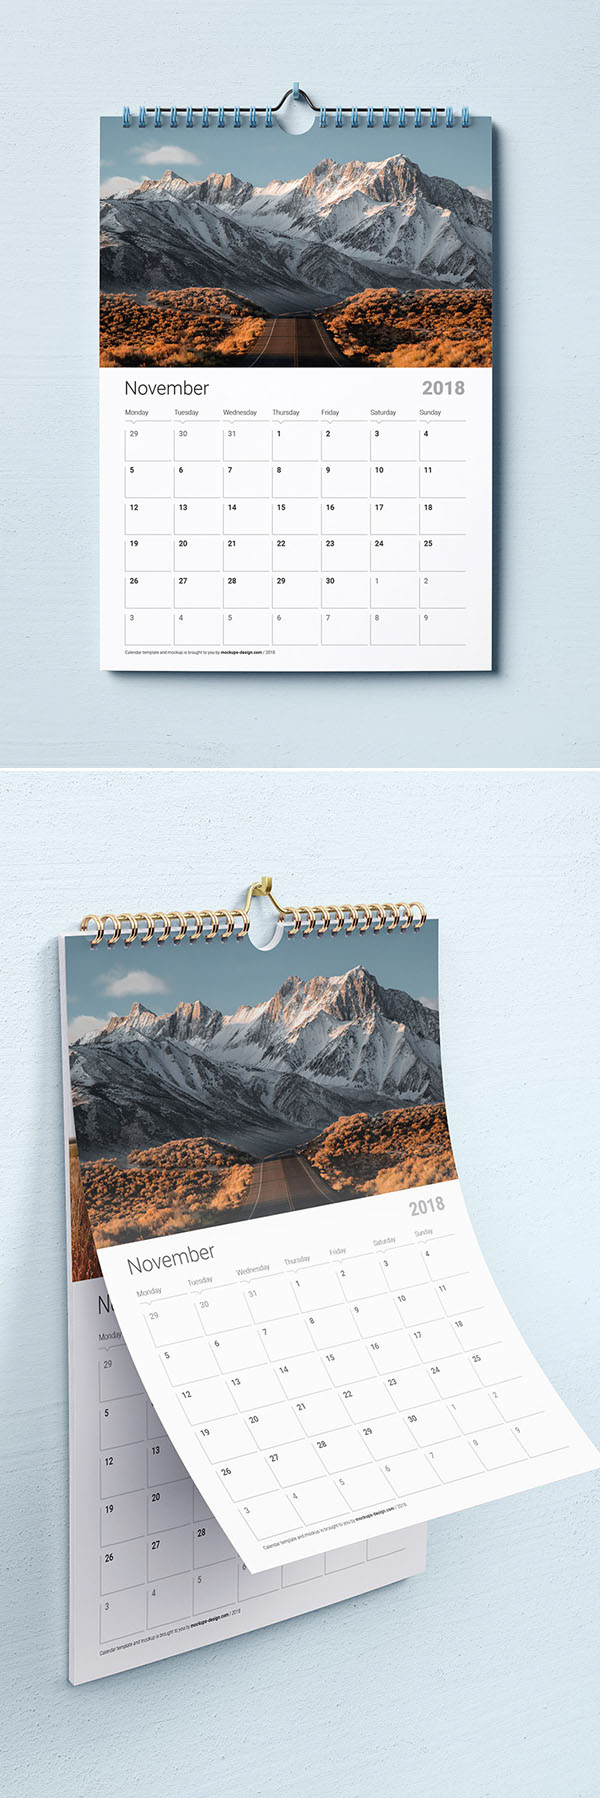 Calendario de pared gratis maqueta PSD